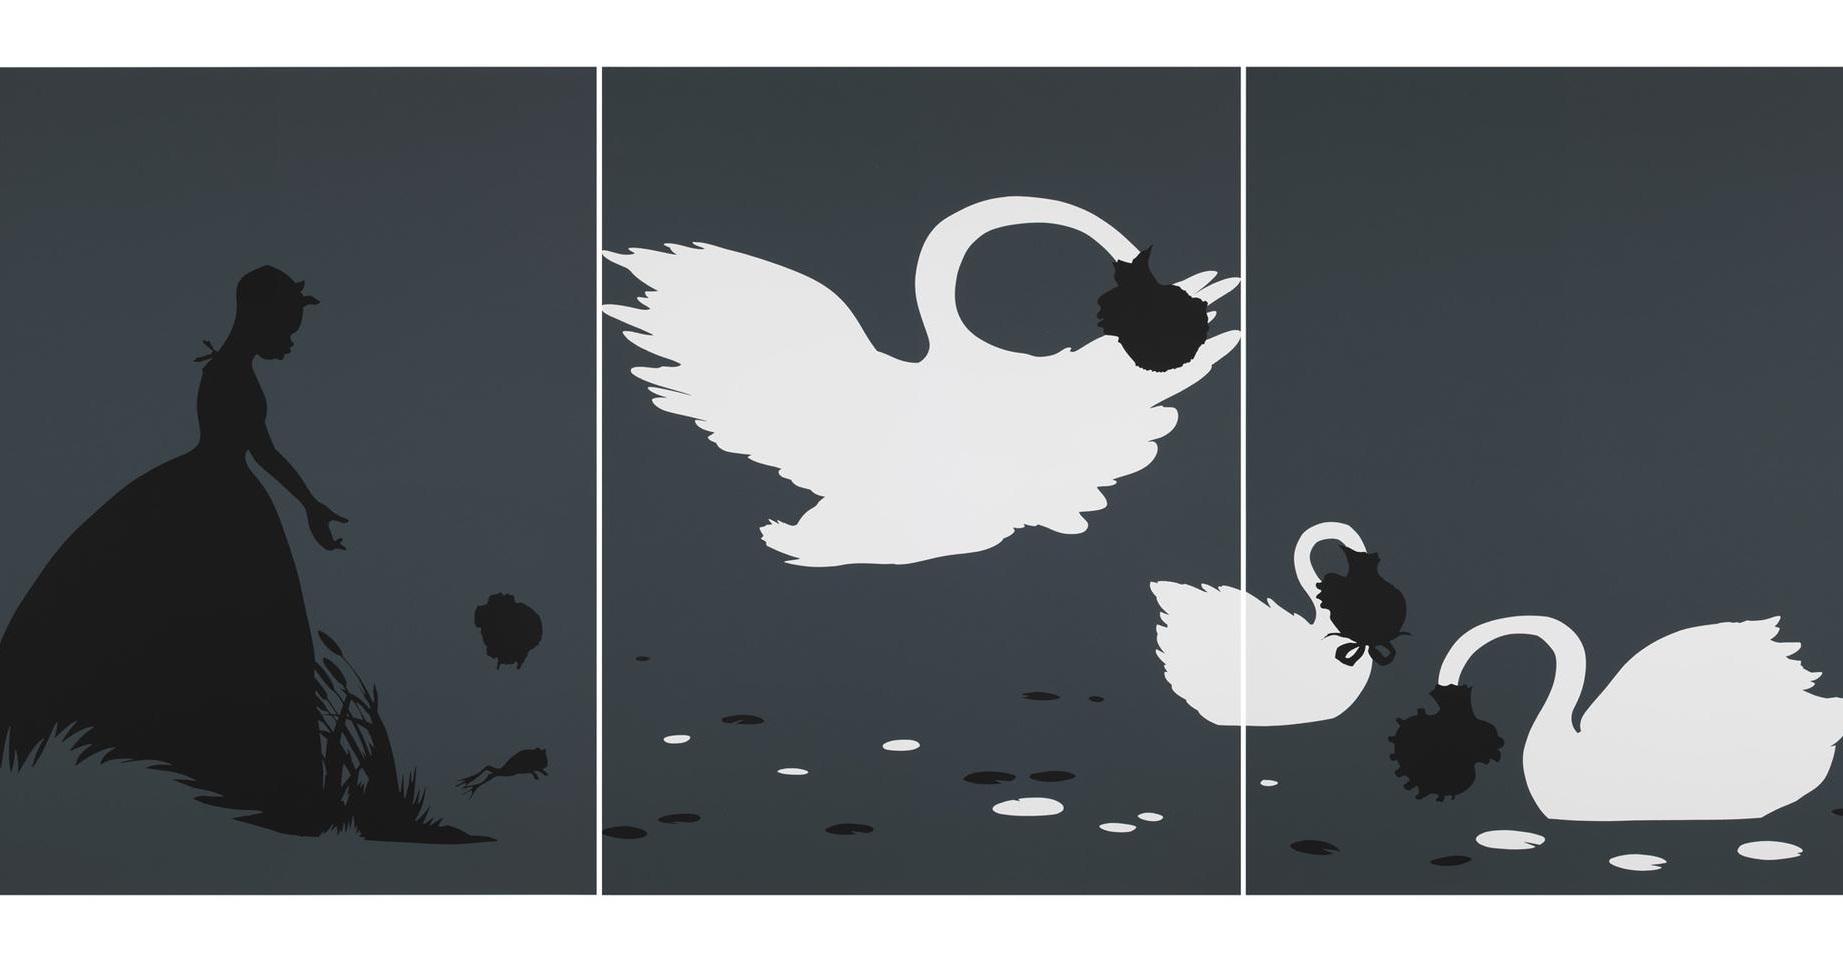 a screen print by Kara Walker of a woman and swans